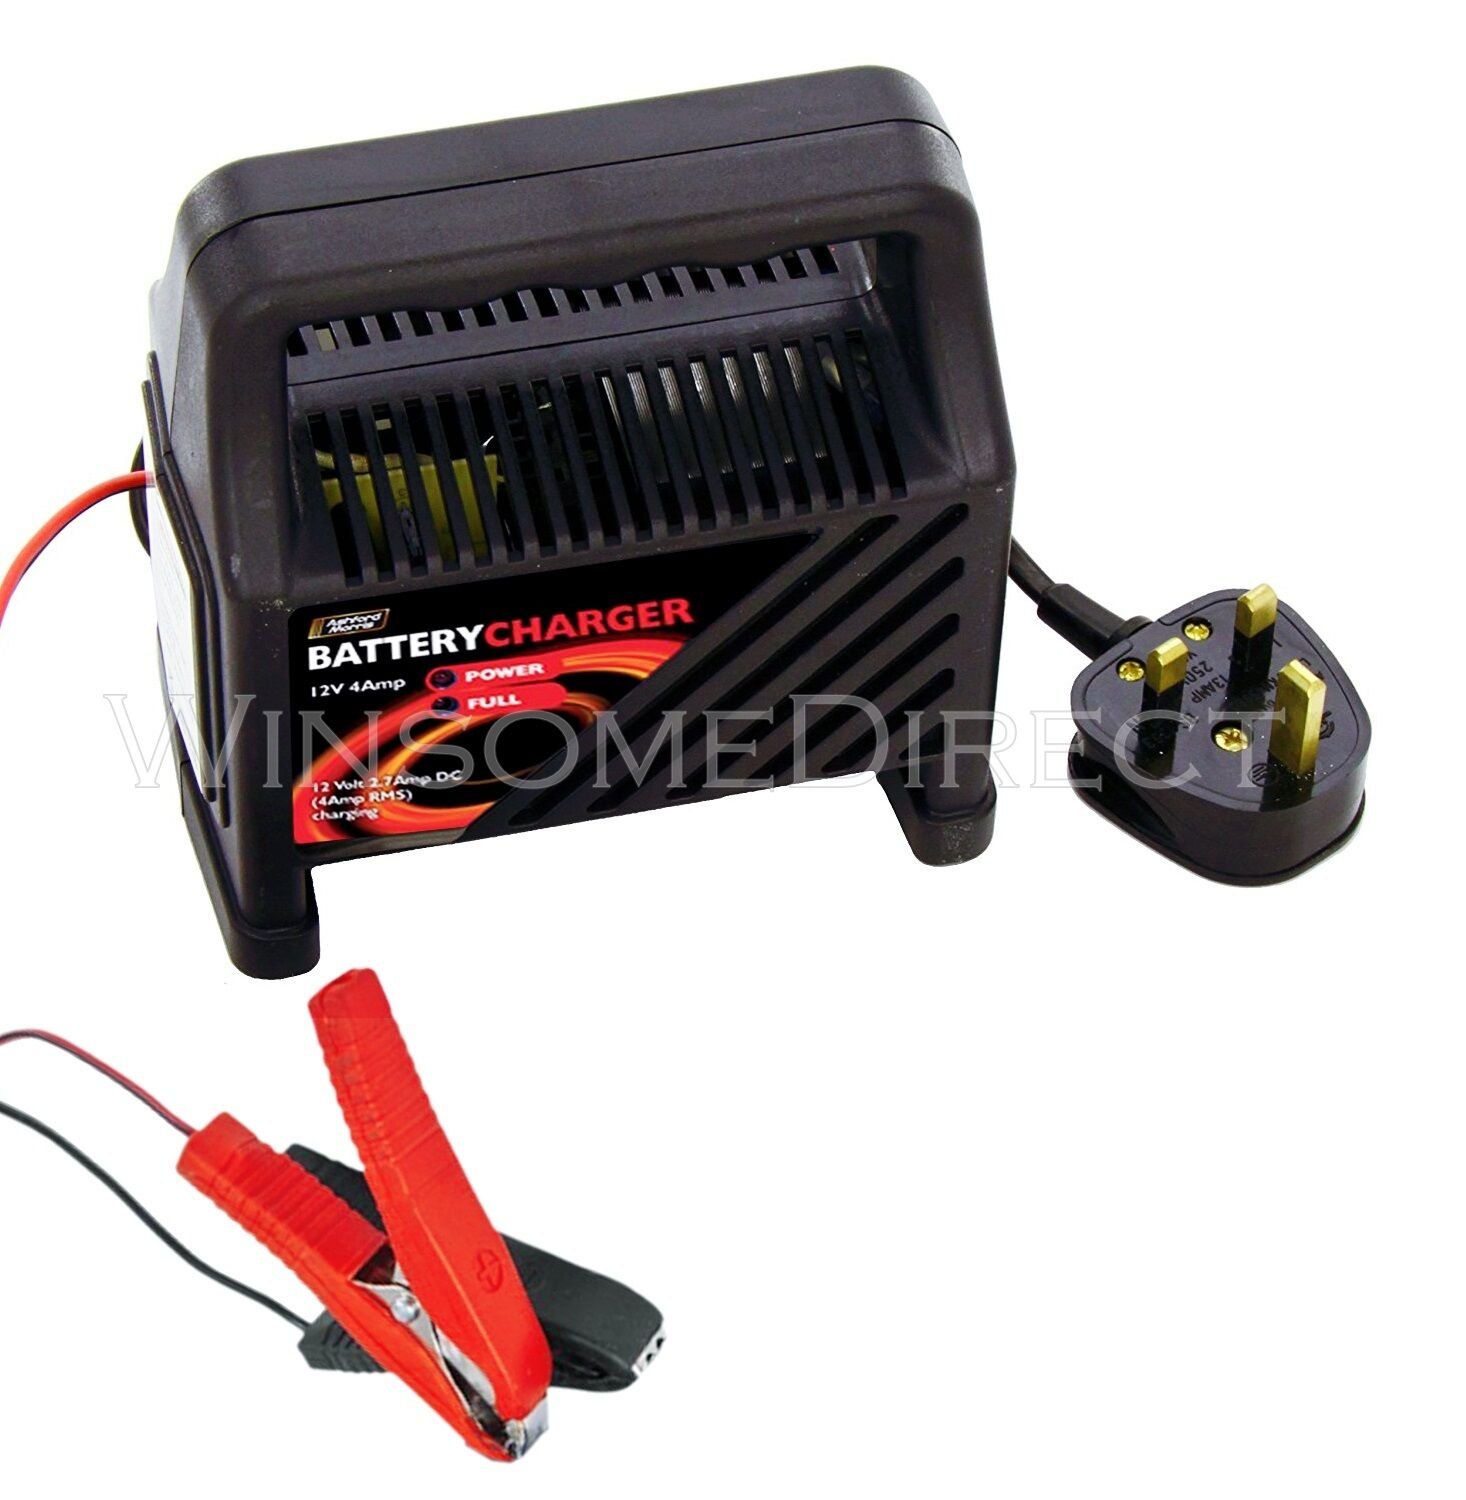 How To Use Instant Power Car Battery Charger